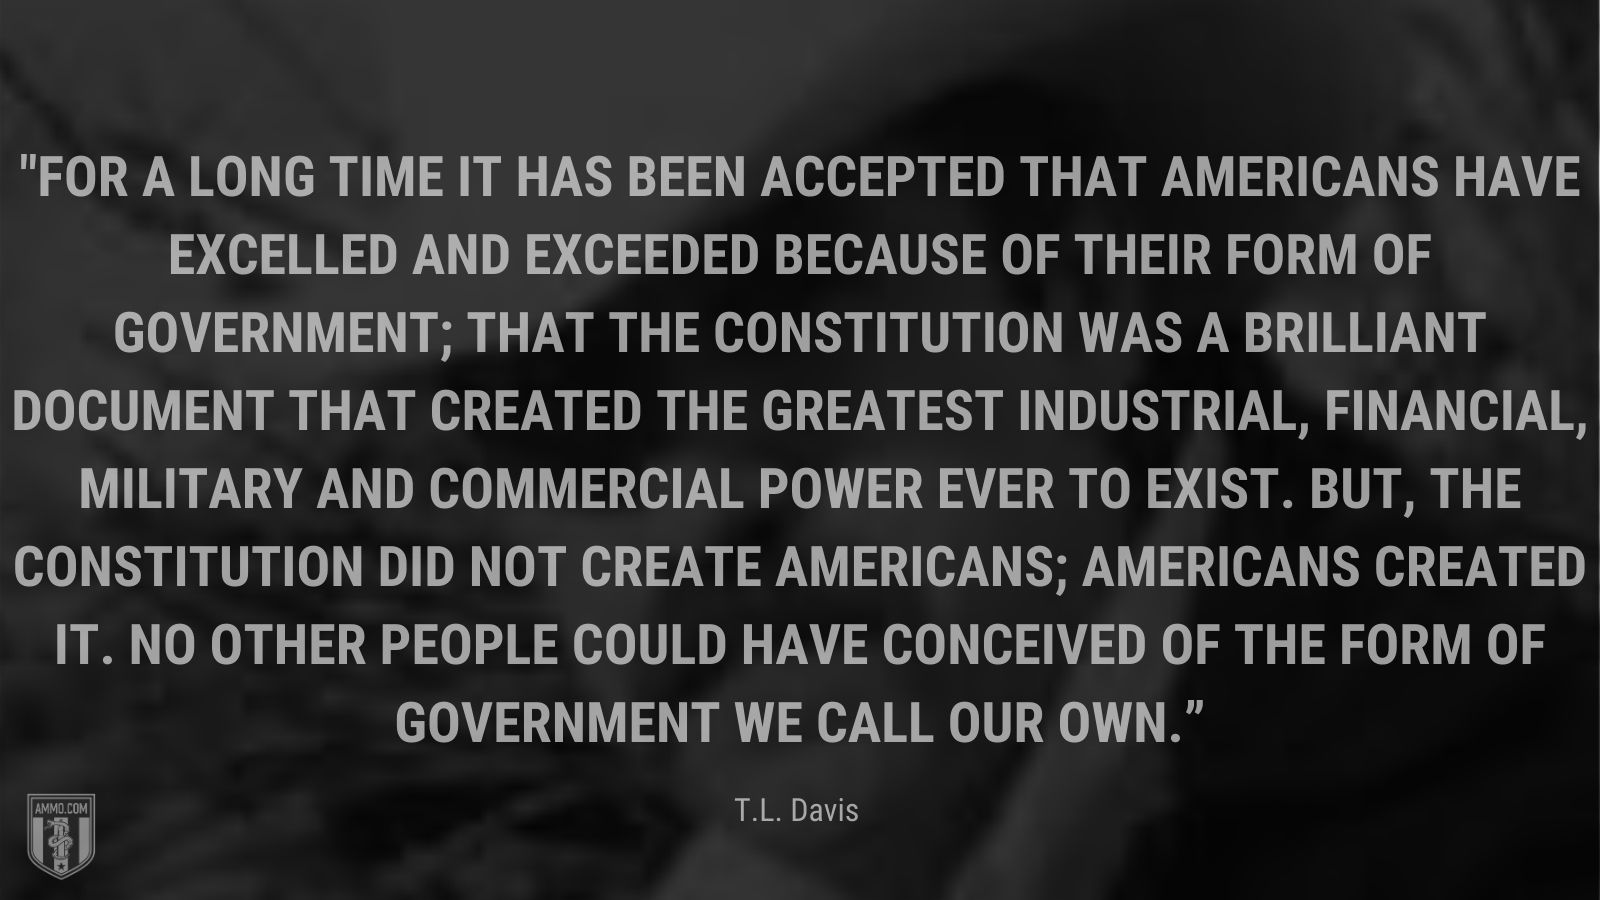 """""""For a long time it has been accepted that Americans have excelled and exceeded because of their form of government; that the Constitution was a brilliant document that created the greatest industrial, financial, military and commercial power ever to exist. But, the Constitution did not create Americans; Americans created it. No other people could have conceived of the form of government we call our own."""" - T.L. Davis"""